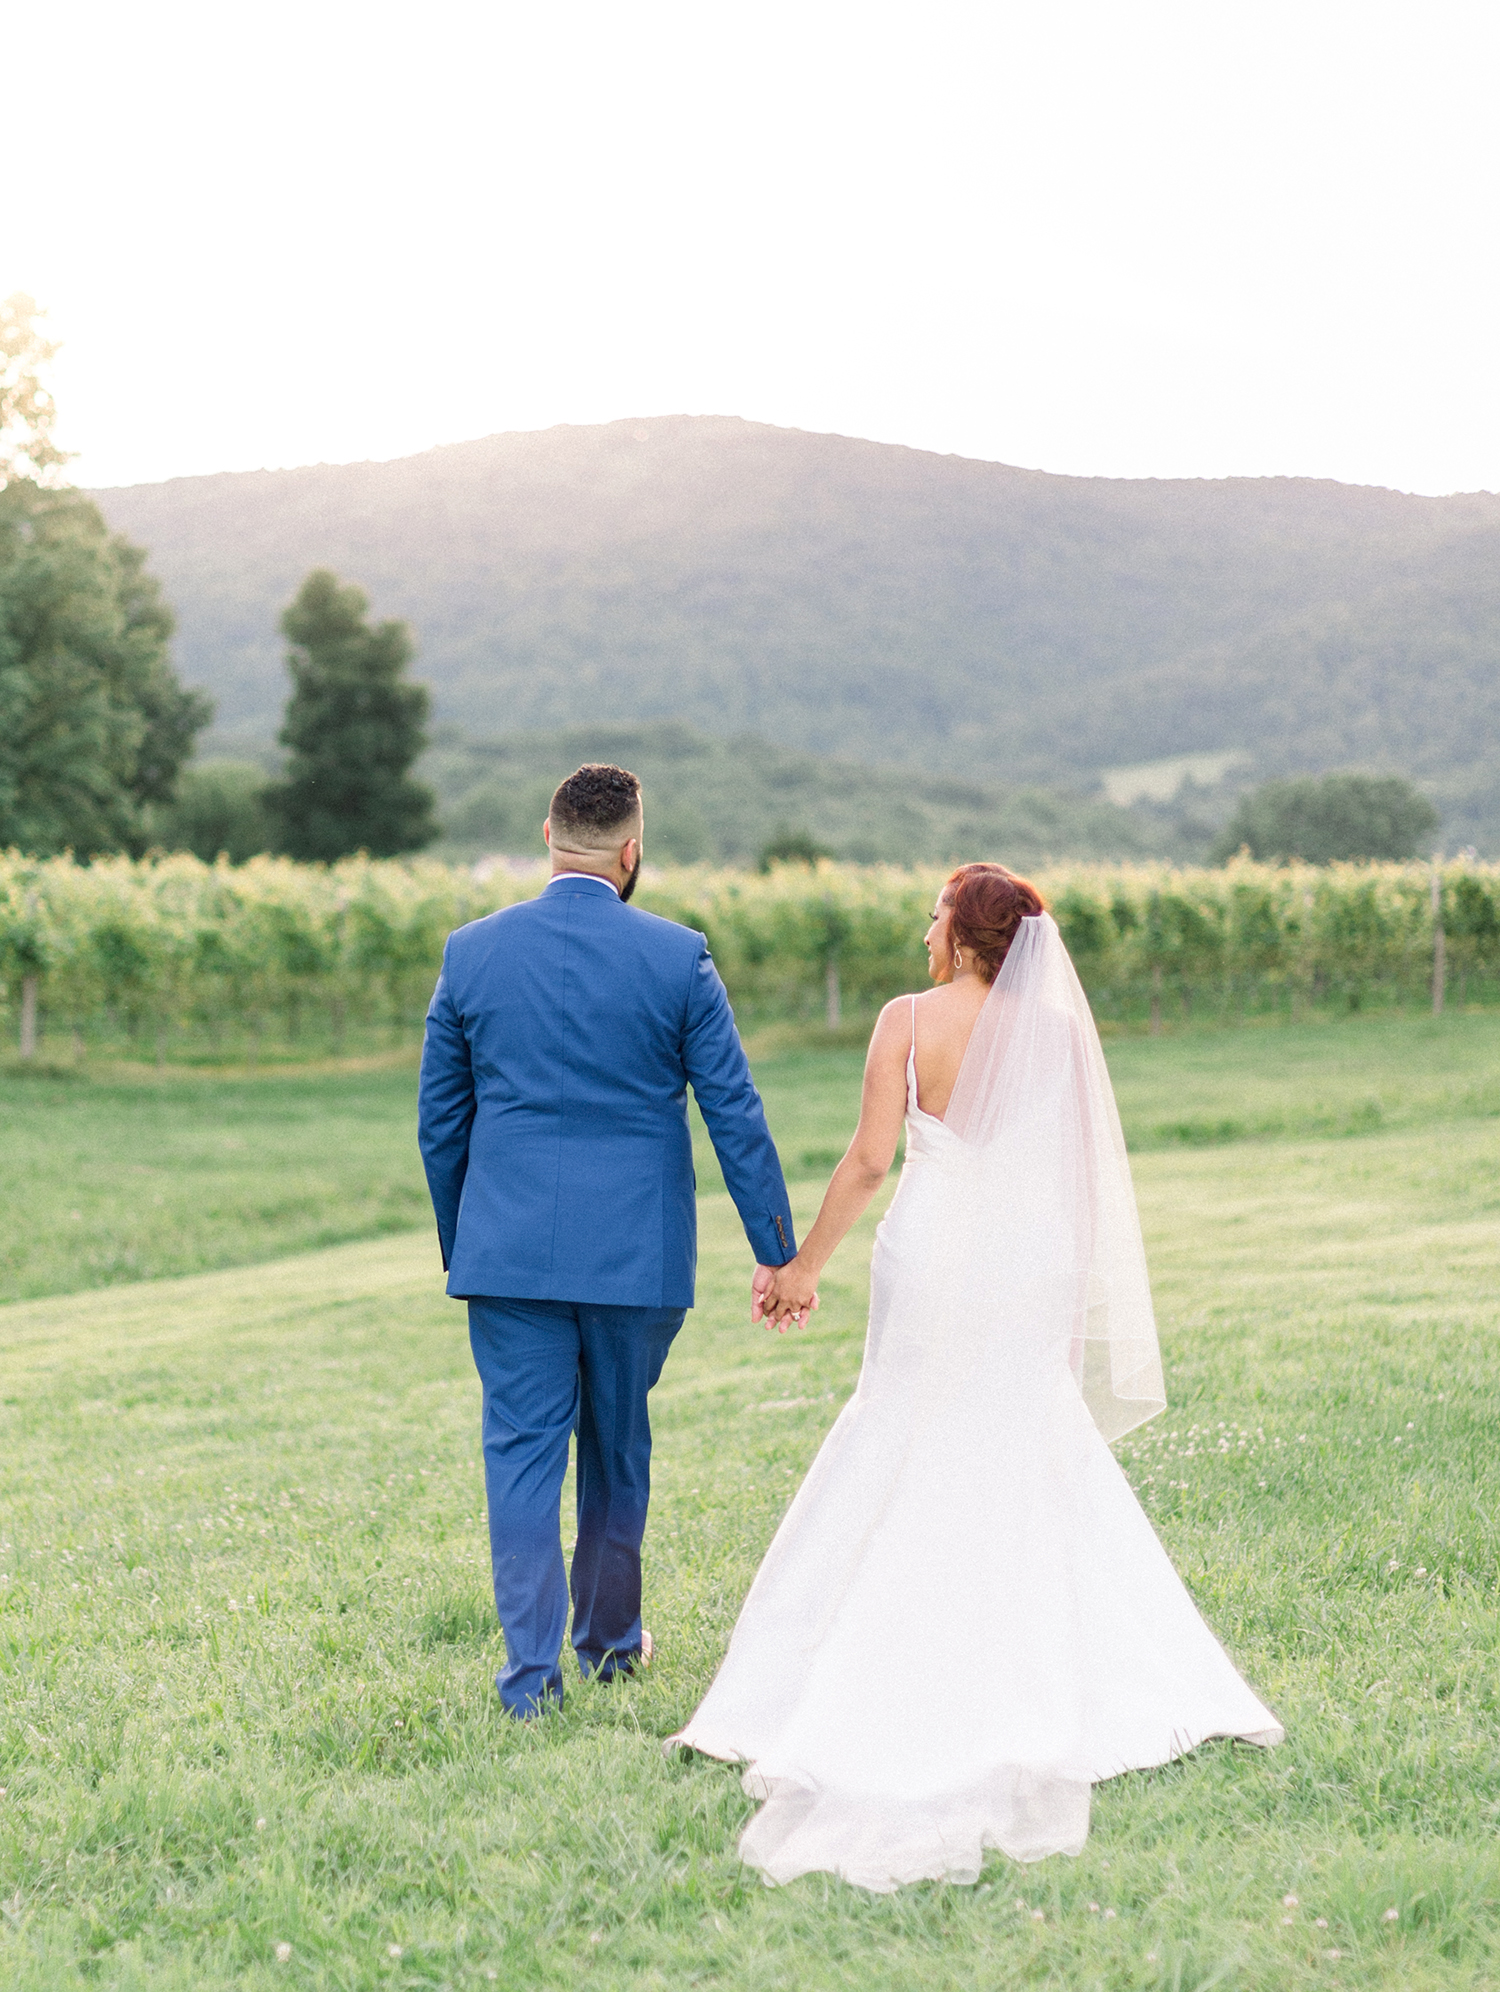 Married Couples Share Their Most Surprising Pieces of Advice for Newlyweds